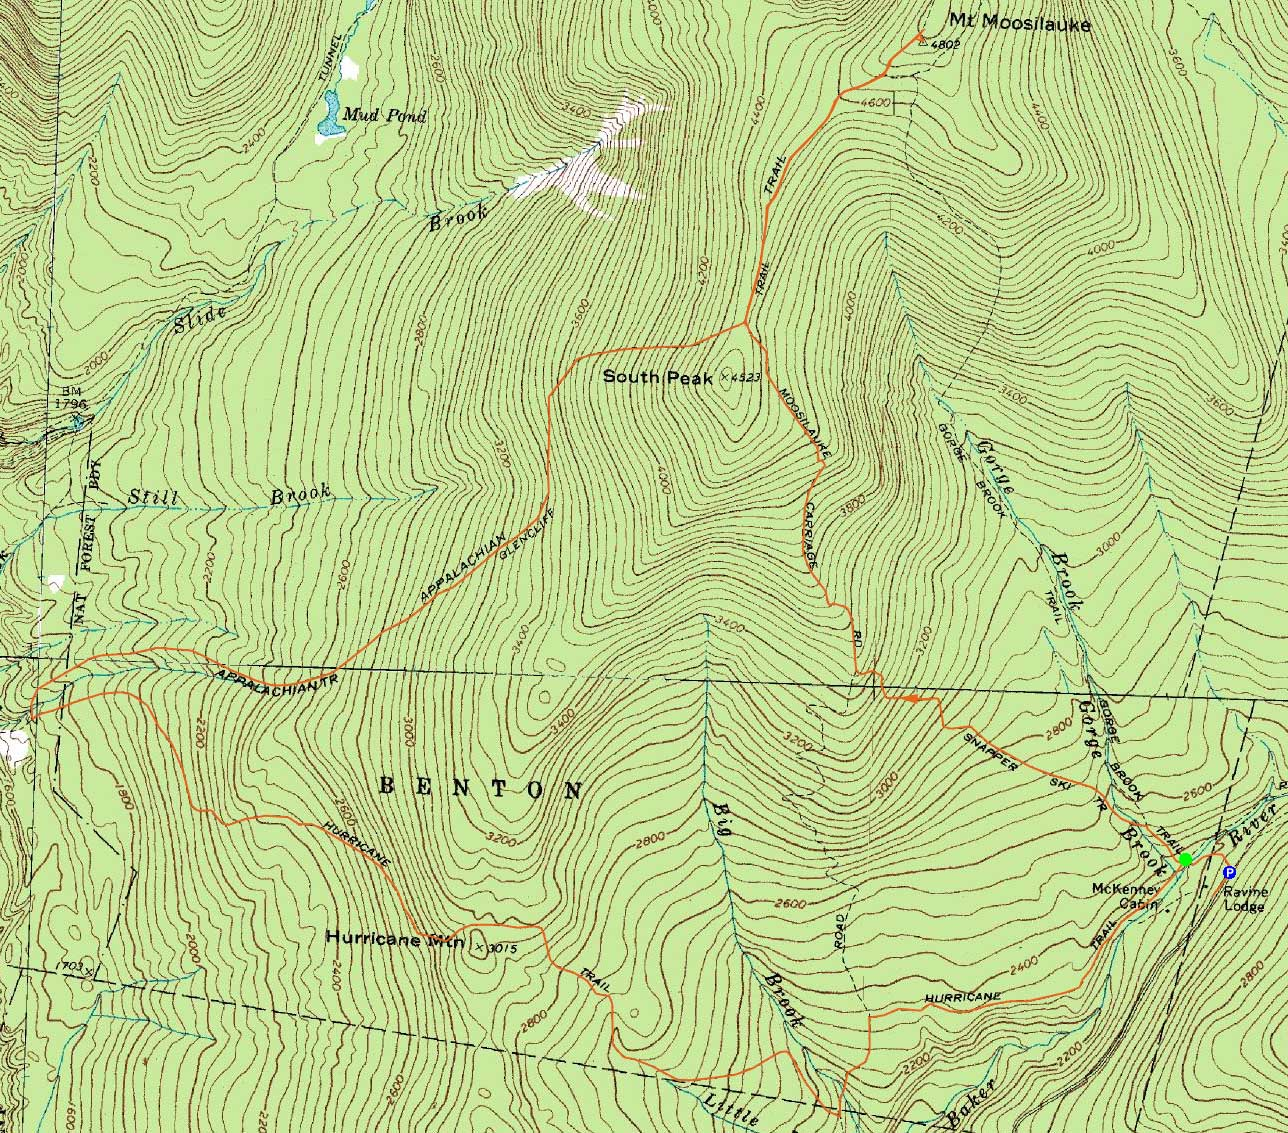 topographic map of mt moosilauke  click to enlarge. mt moosilauke  new hampshire  sunday hike trip report